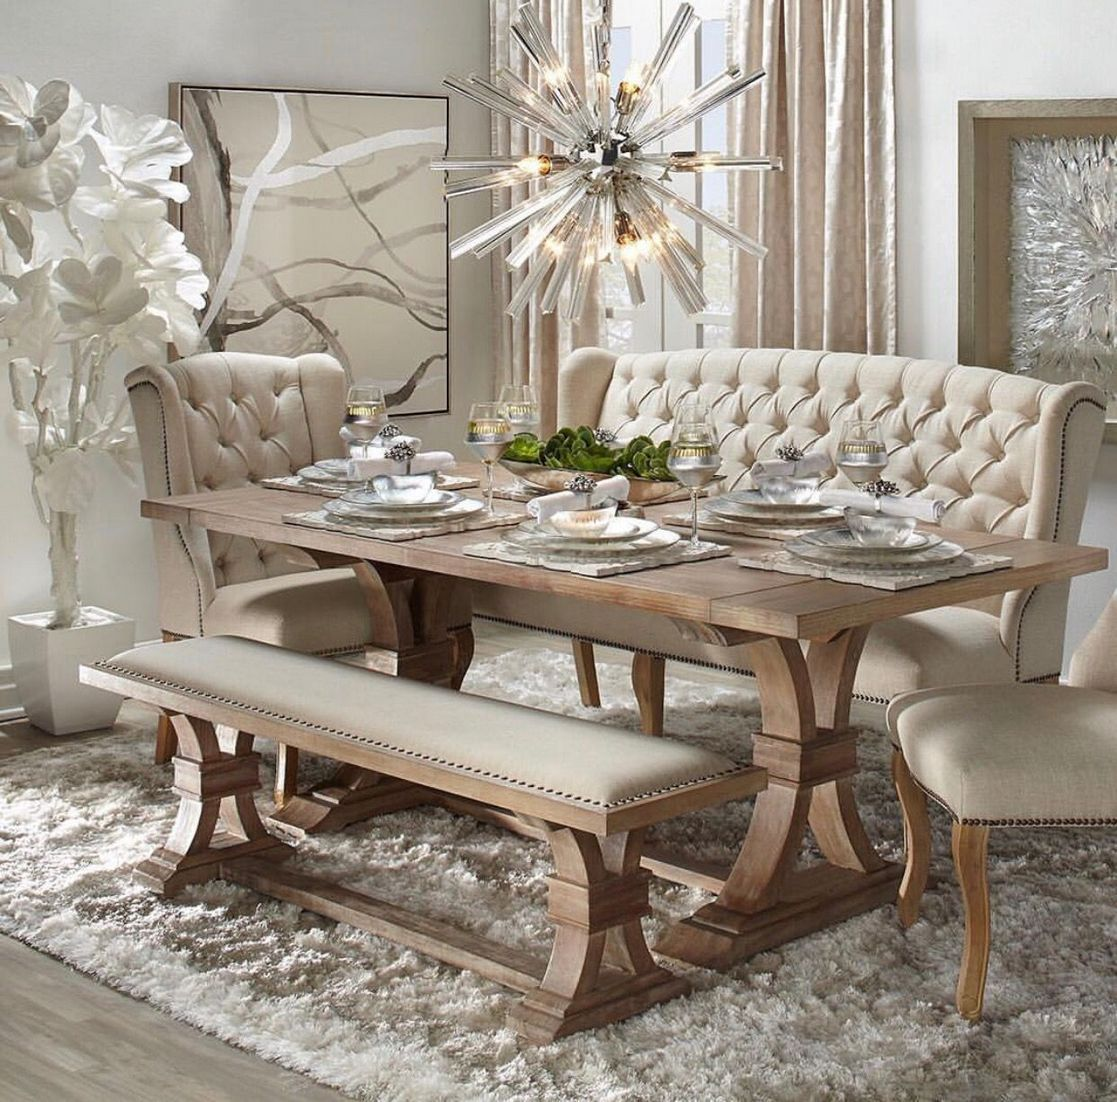 Fabulous Modern Cozy Dining Room 13 Firstmine Shabby Chic Dining Room Dining Room Table Decor Chic Dining Room